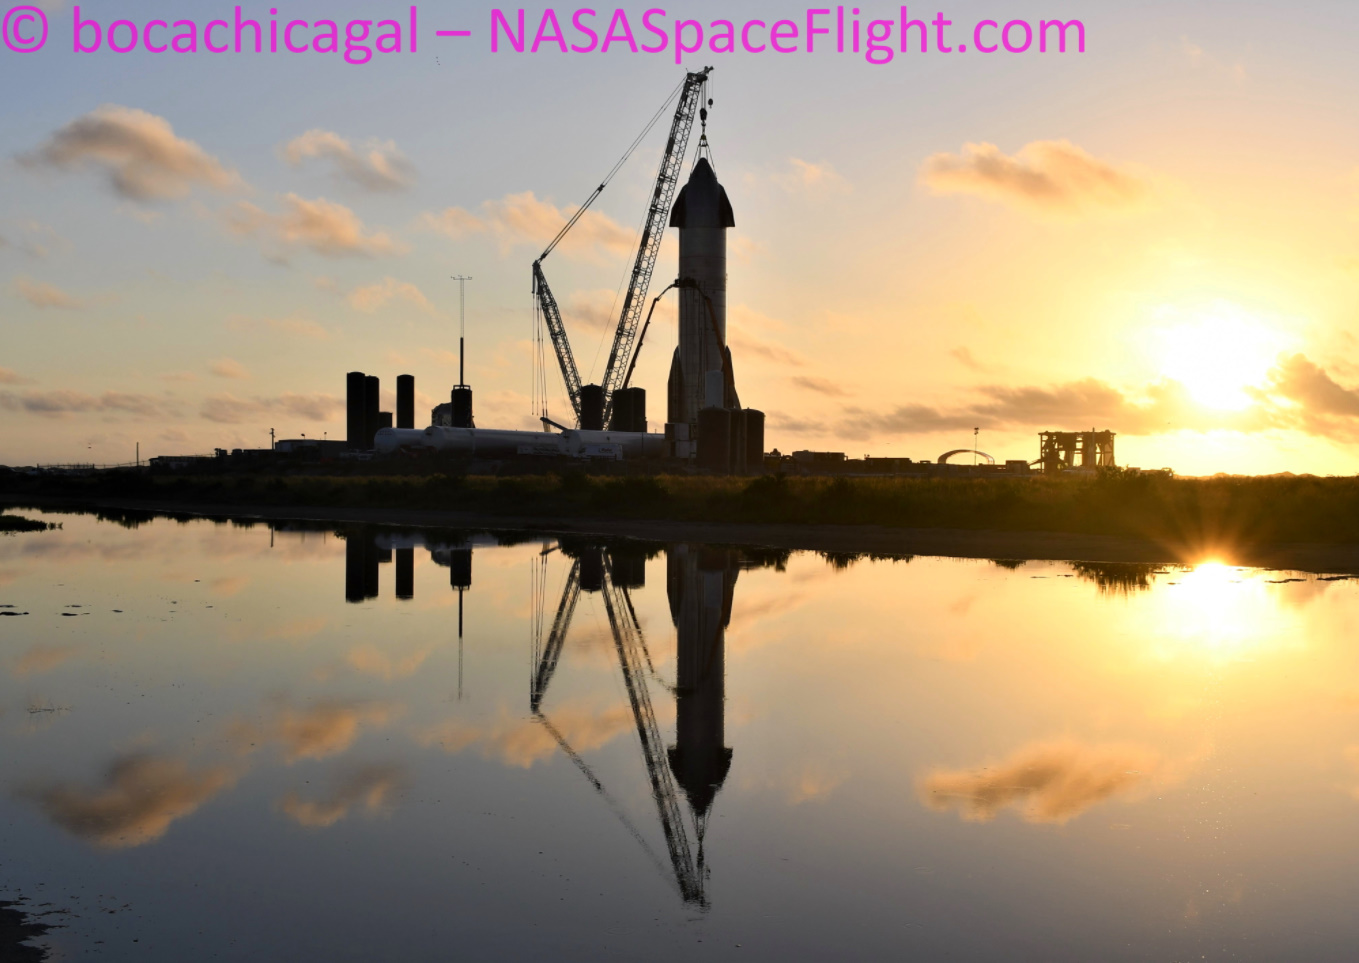 SpaceX Starship: The Continued Evolution of the Big Falcon Rocket